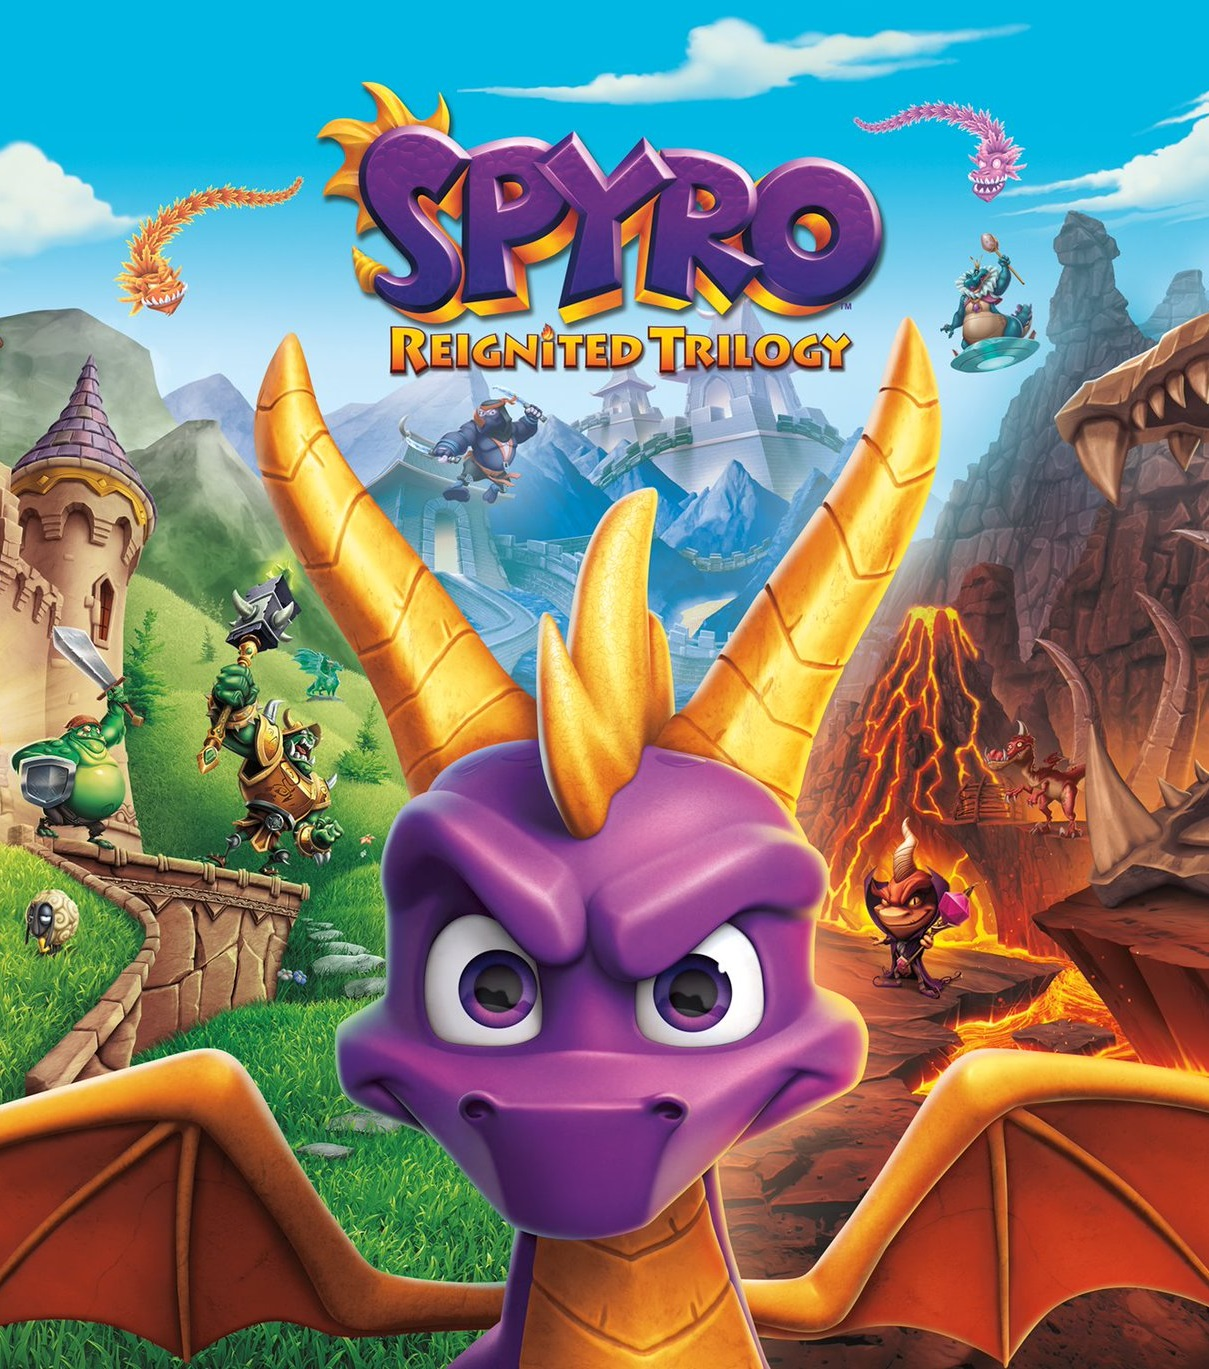 Spyro Reignited Trilogy review – phoenix from the flames